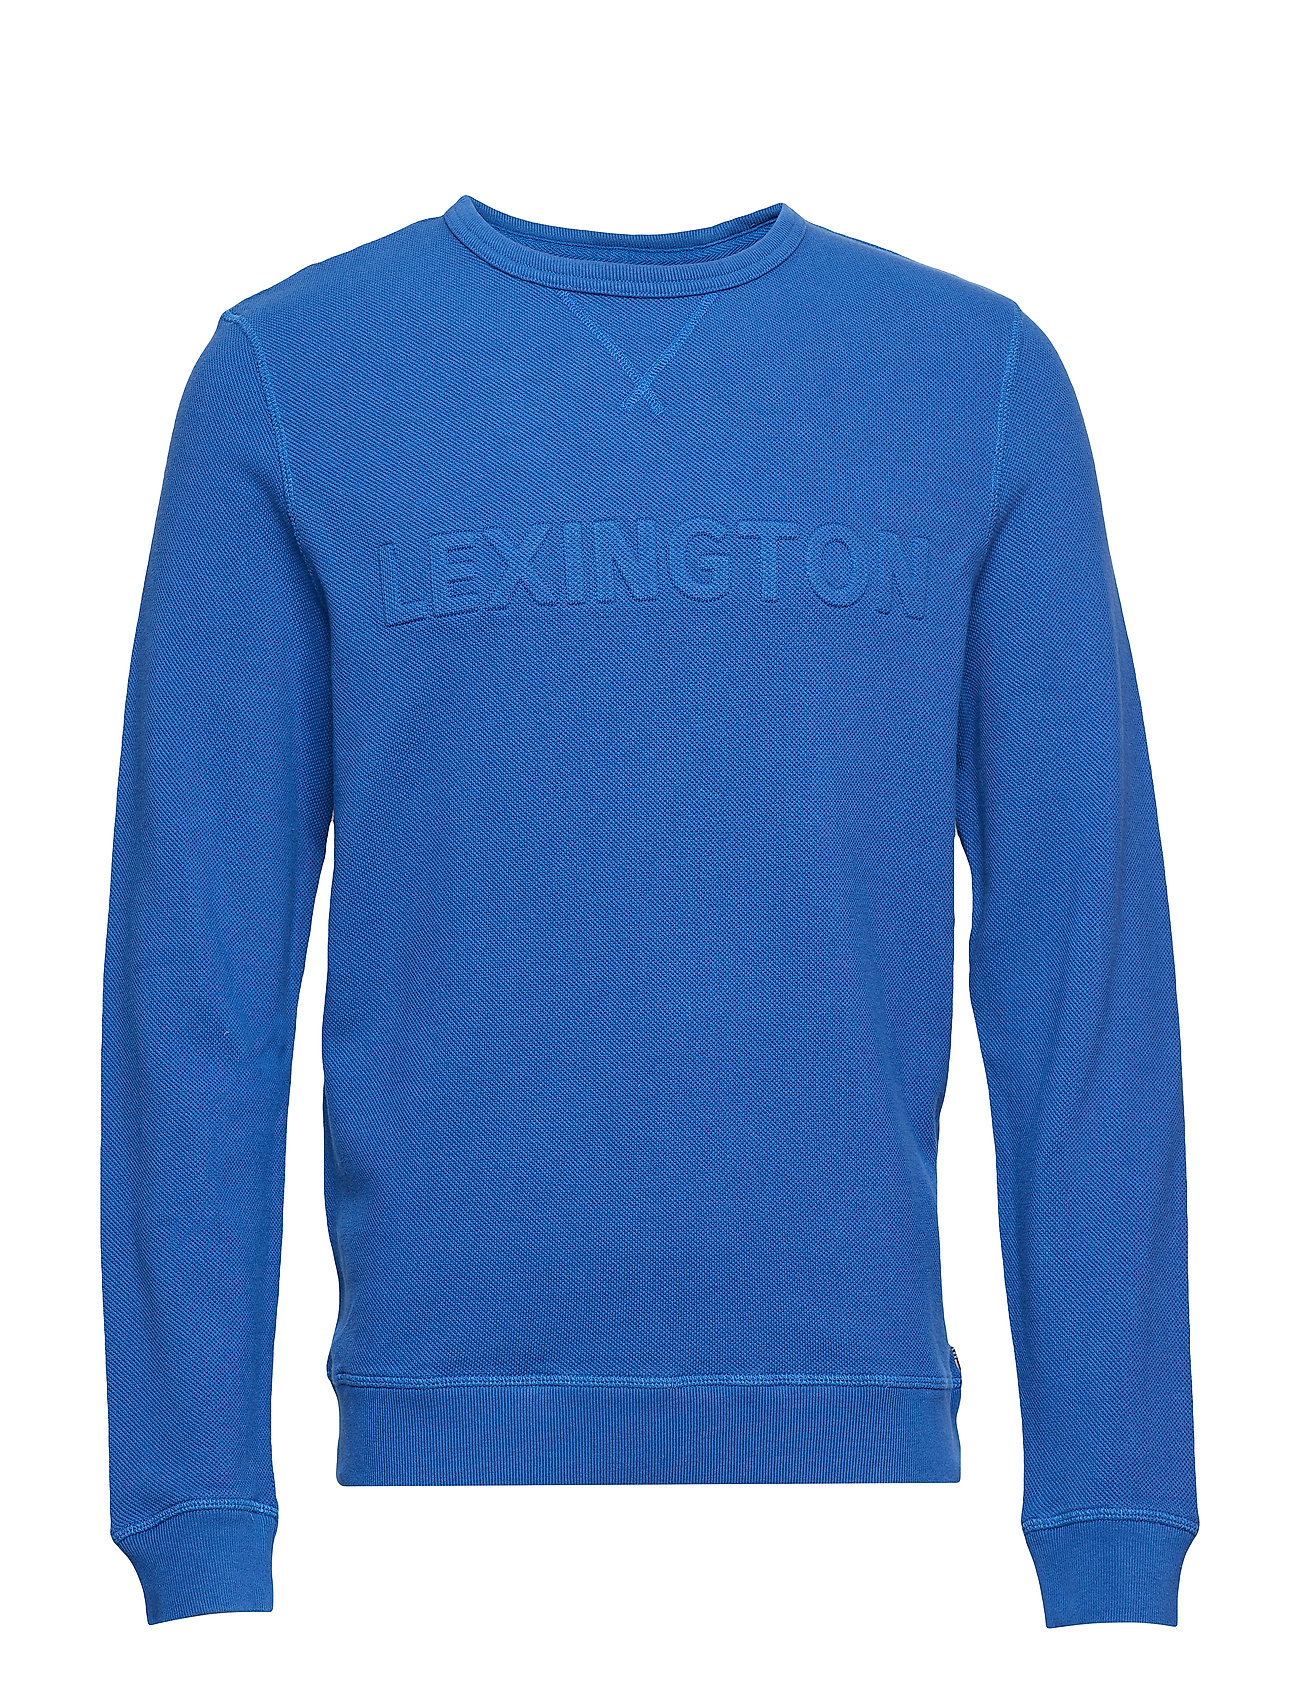 Lexington Clothing Shane Pique Sweatshirt - TRUE BLUE